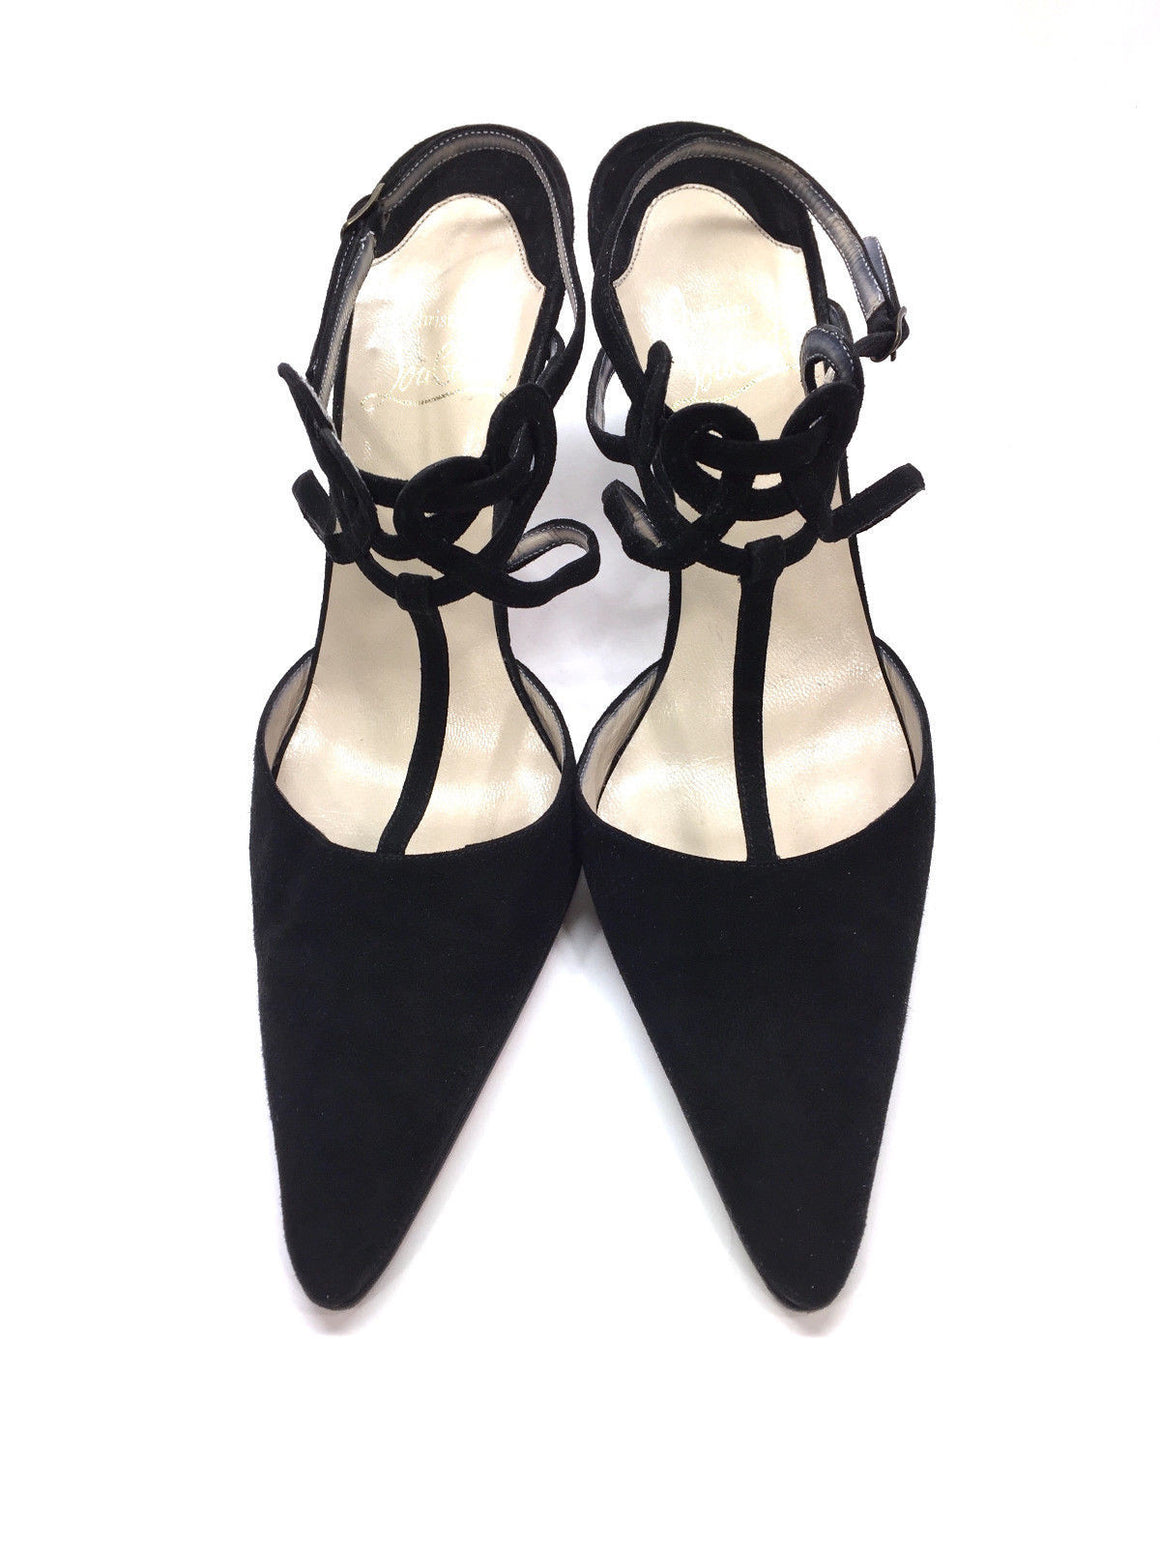 bisbiz.com CHRISTIAN LOUBOUTIN  Black Suede Scrolled Accent Ankle & T-Strap Heel Pumps Shoes  Size: 38 / 8 - Bis Luxury Resale